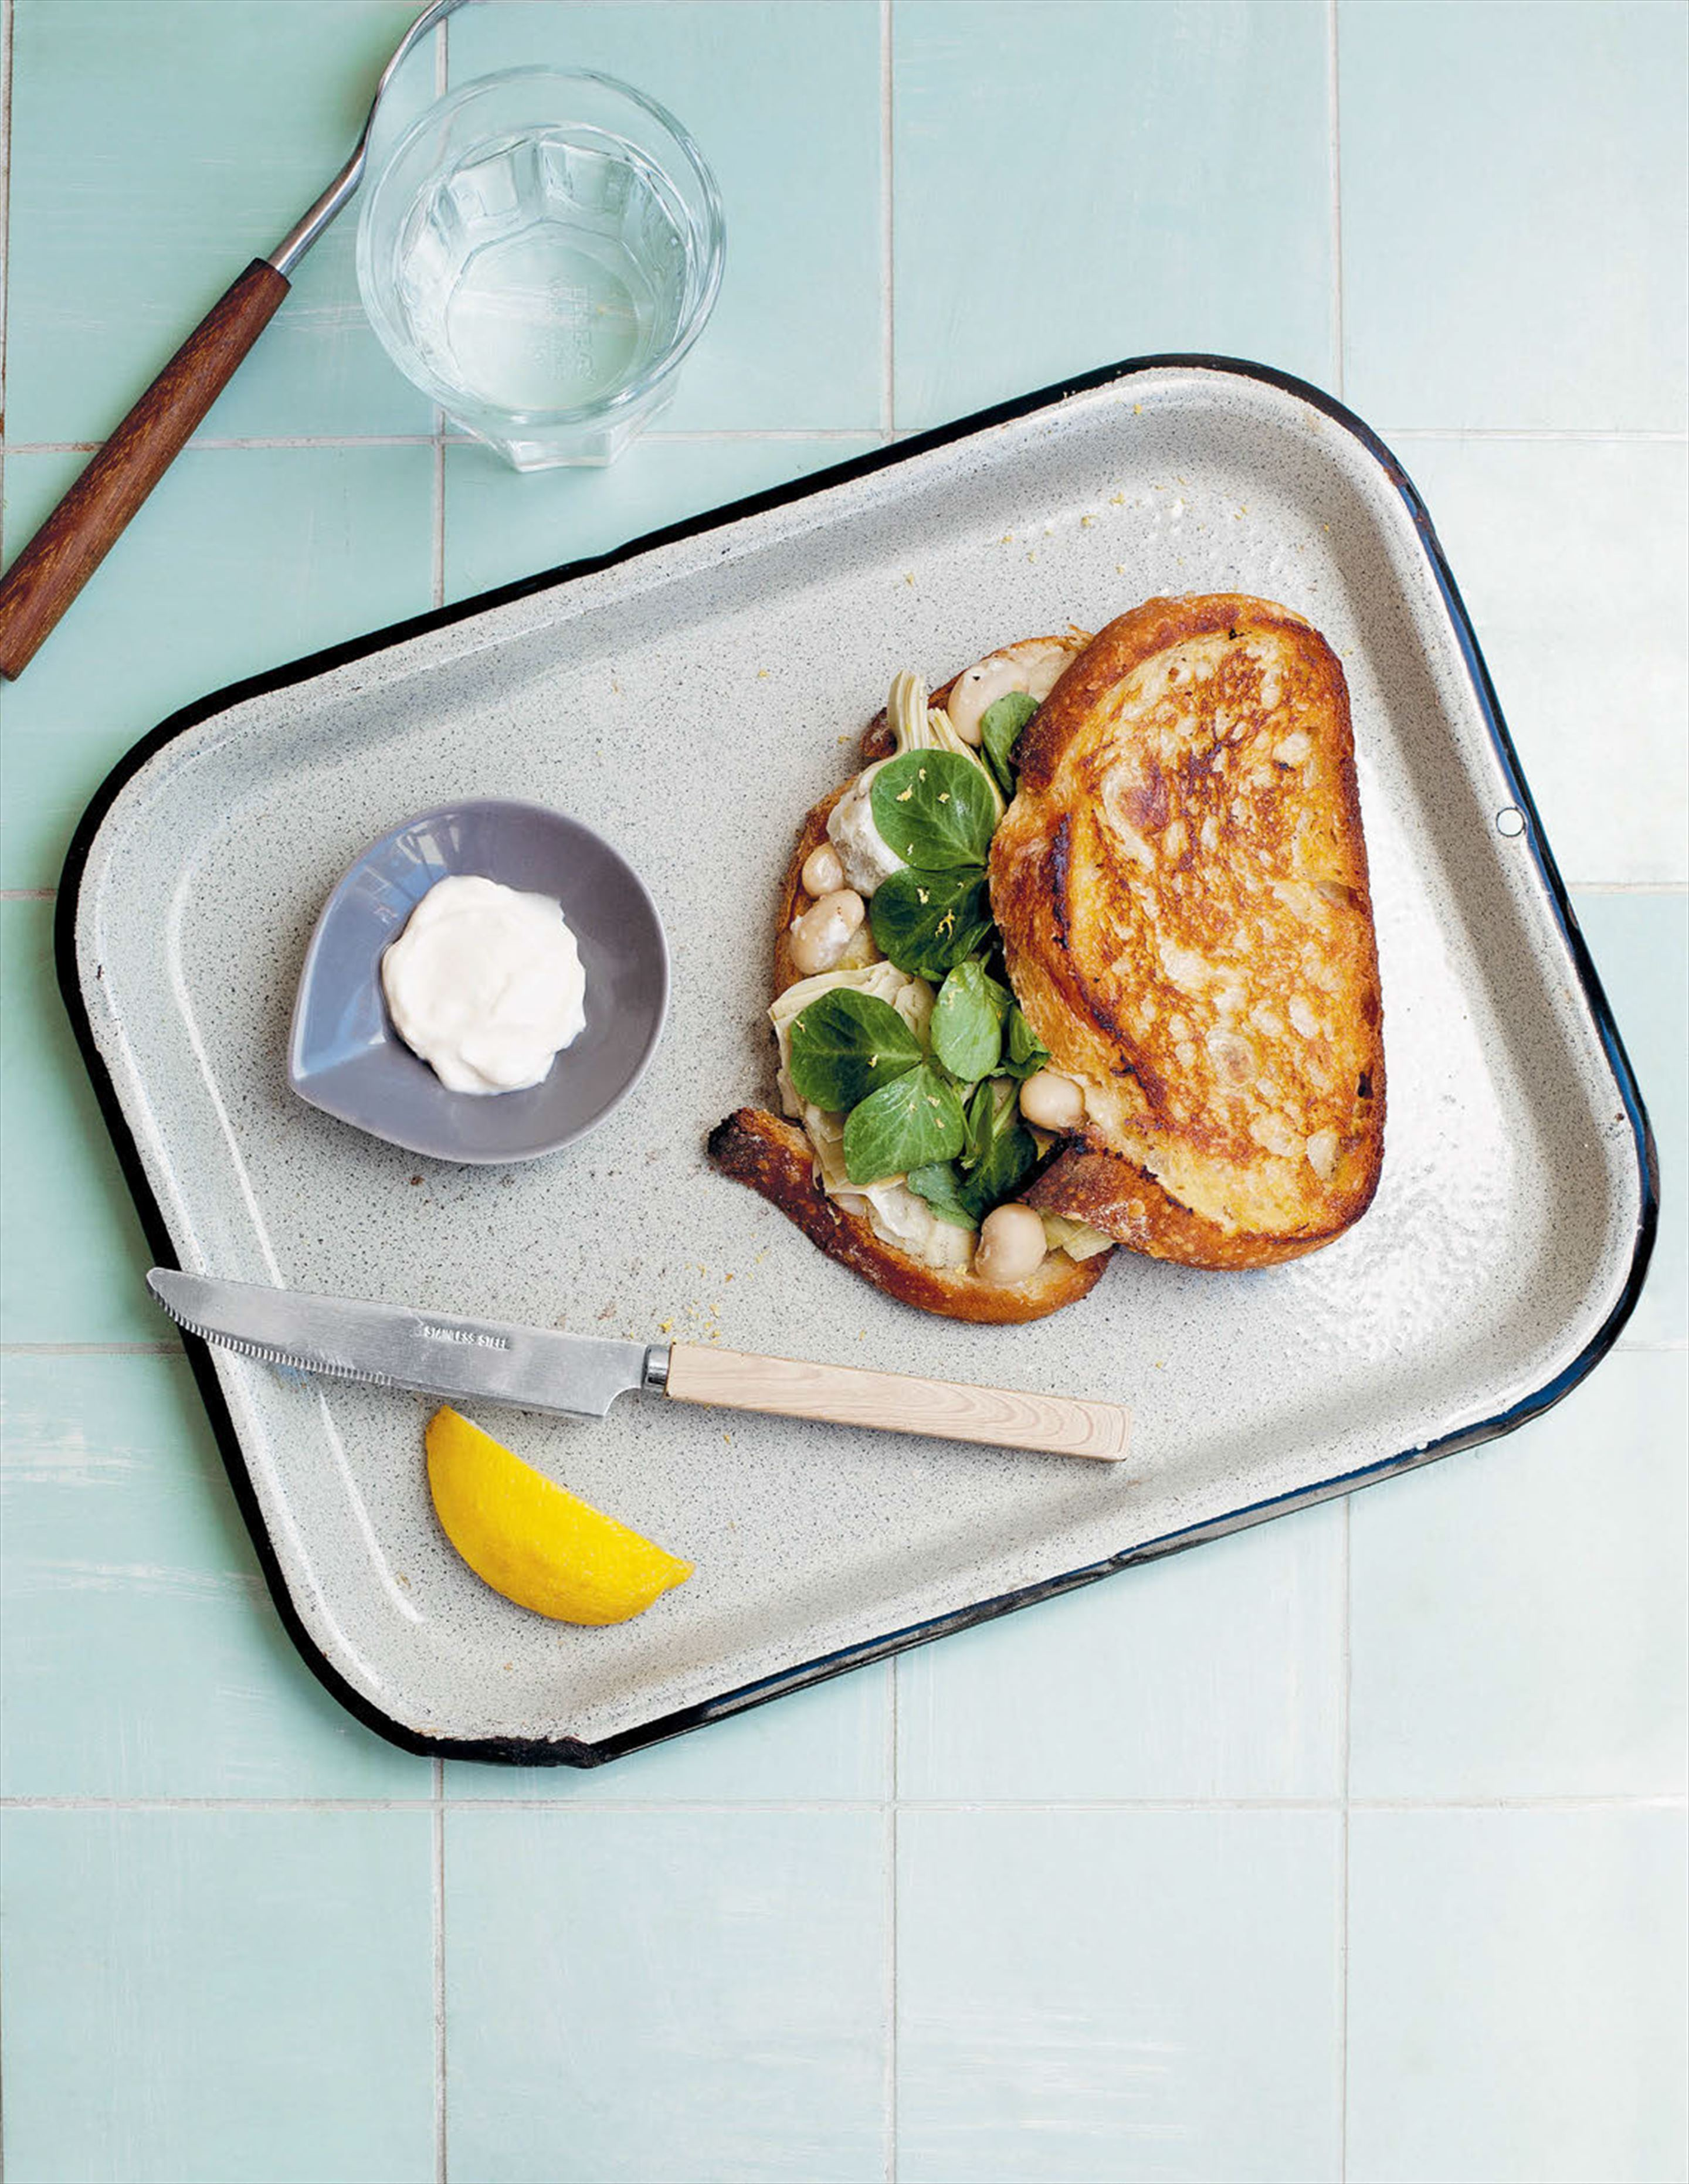 Artichoke, white bean and lemon toasted sandwiches